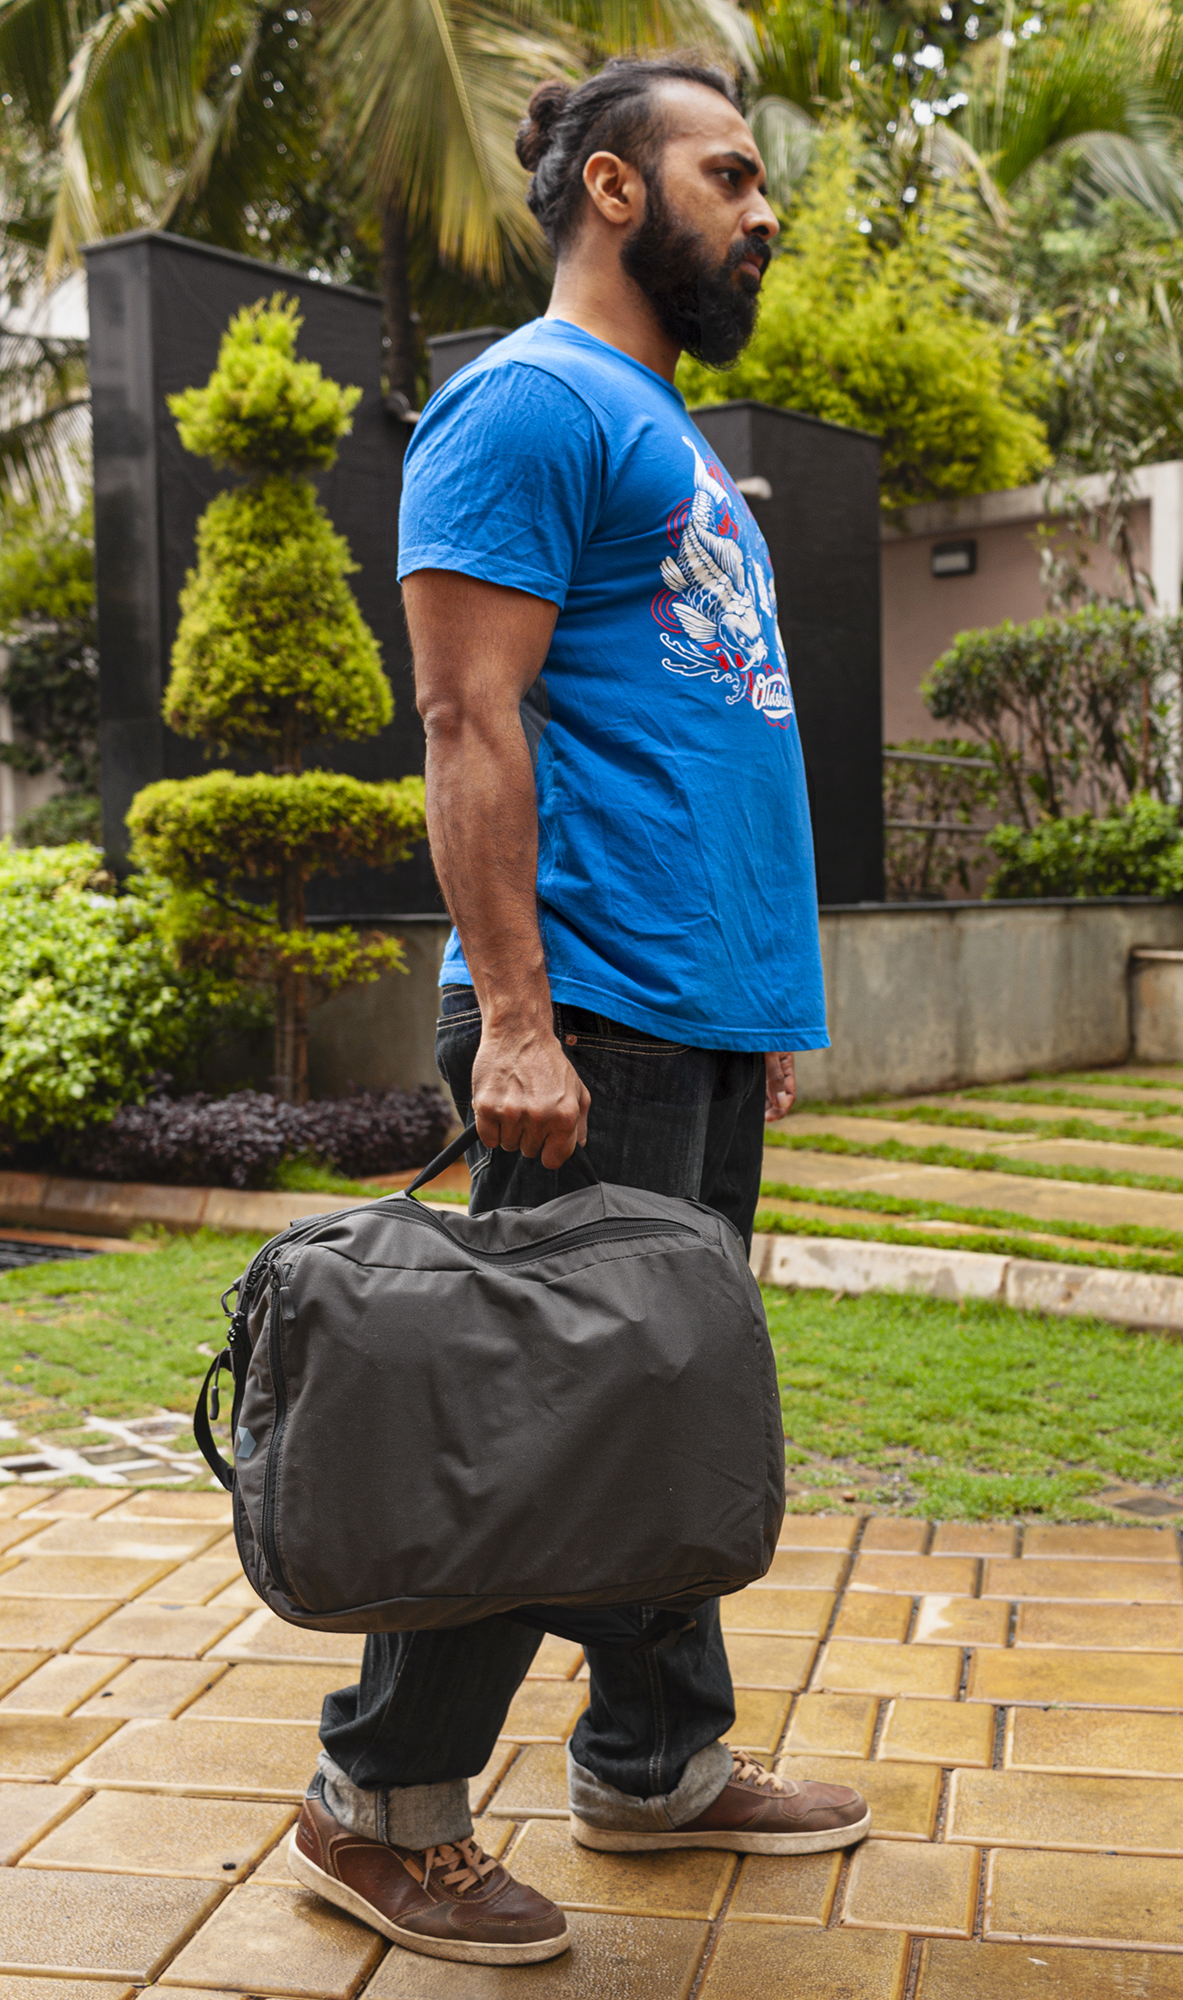 You can comfortably carry the Daily like a duffel bag